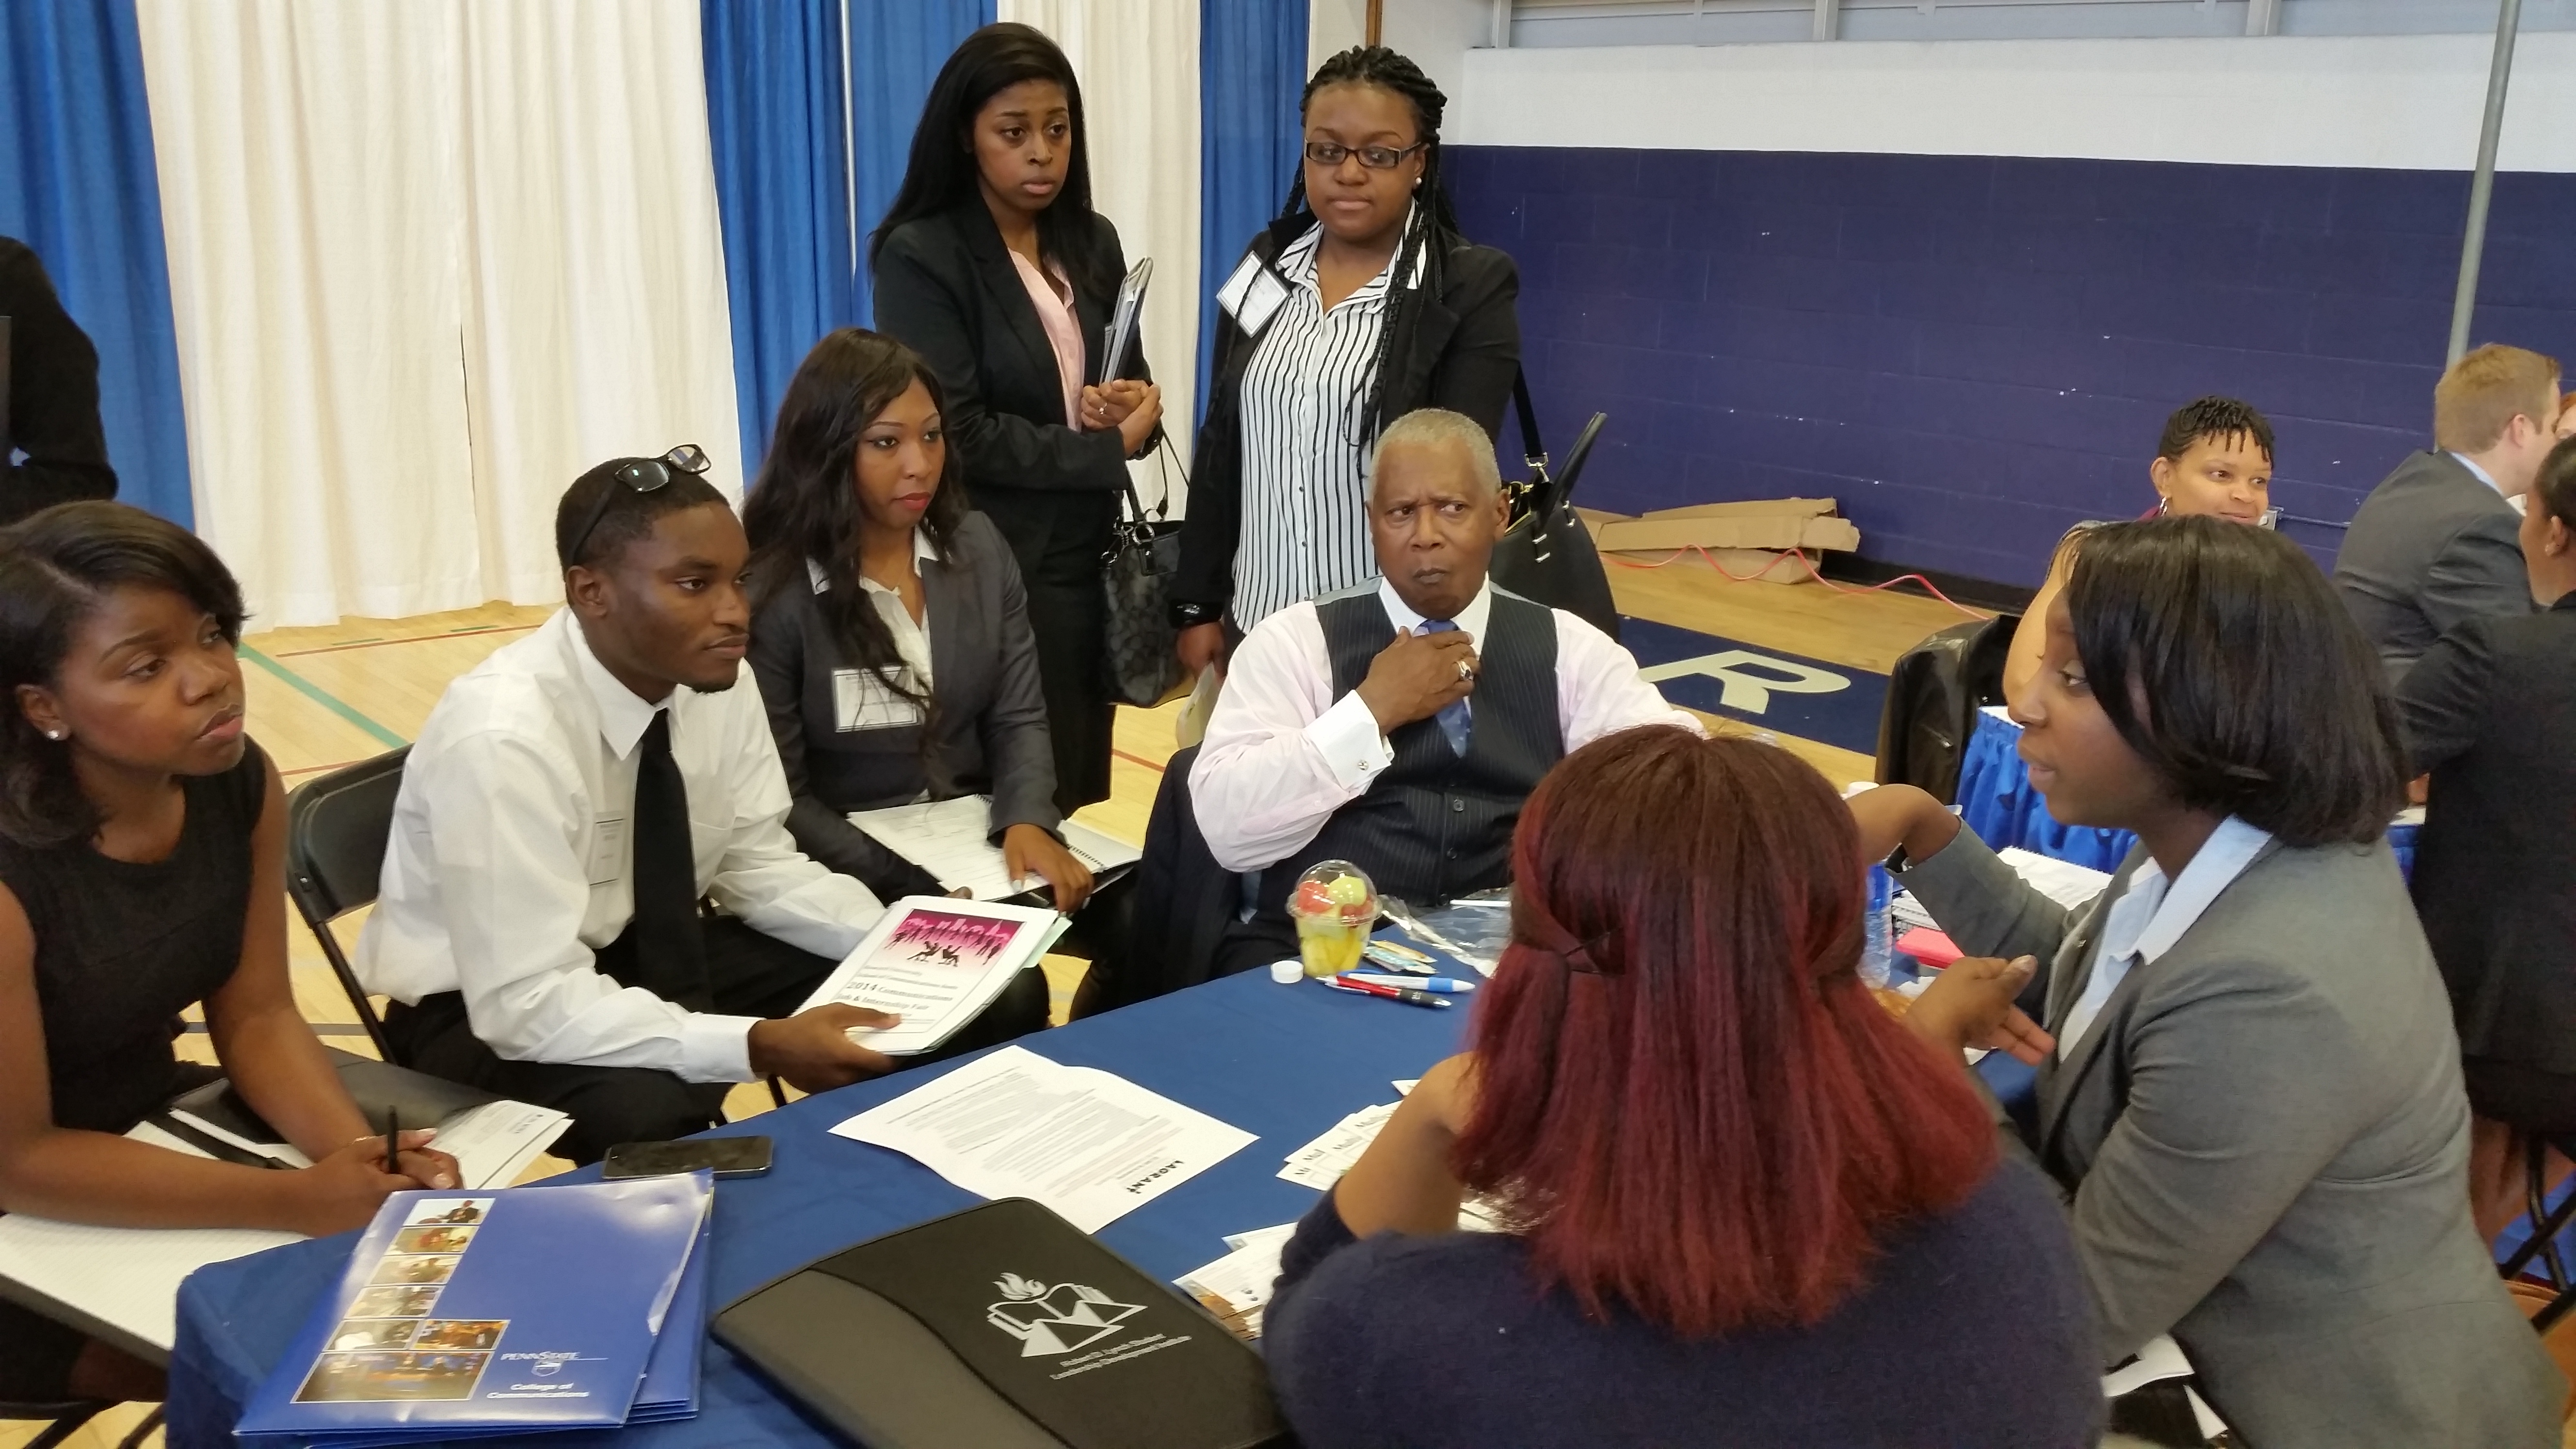 Howard job fair 2014